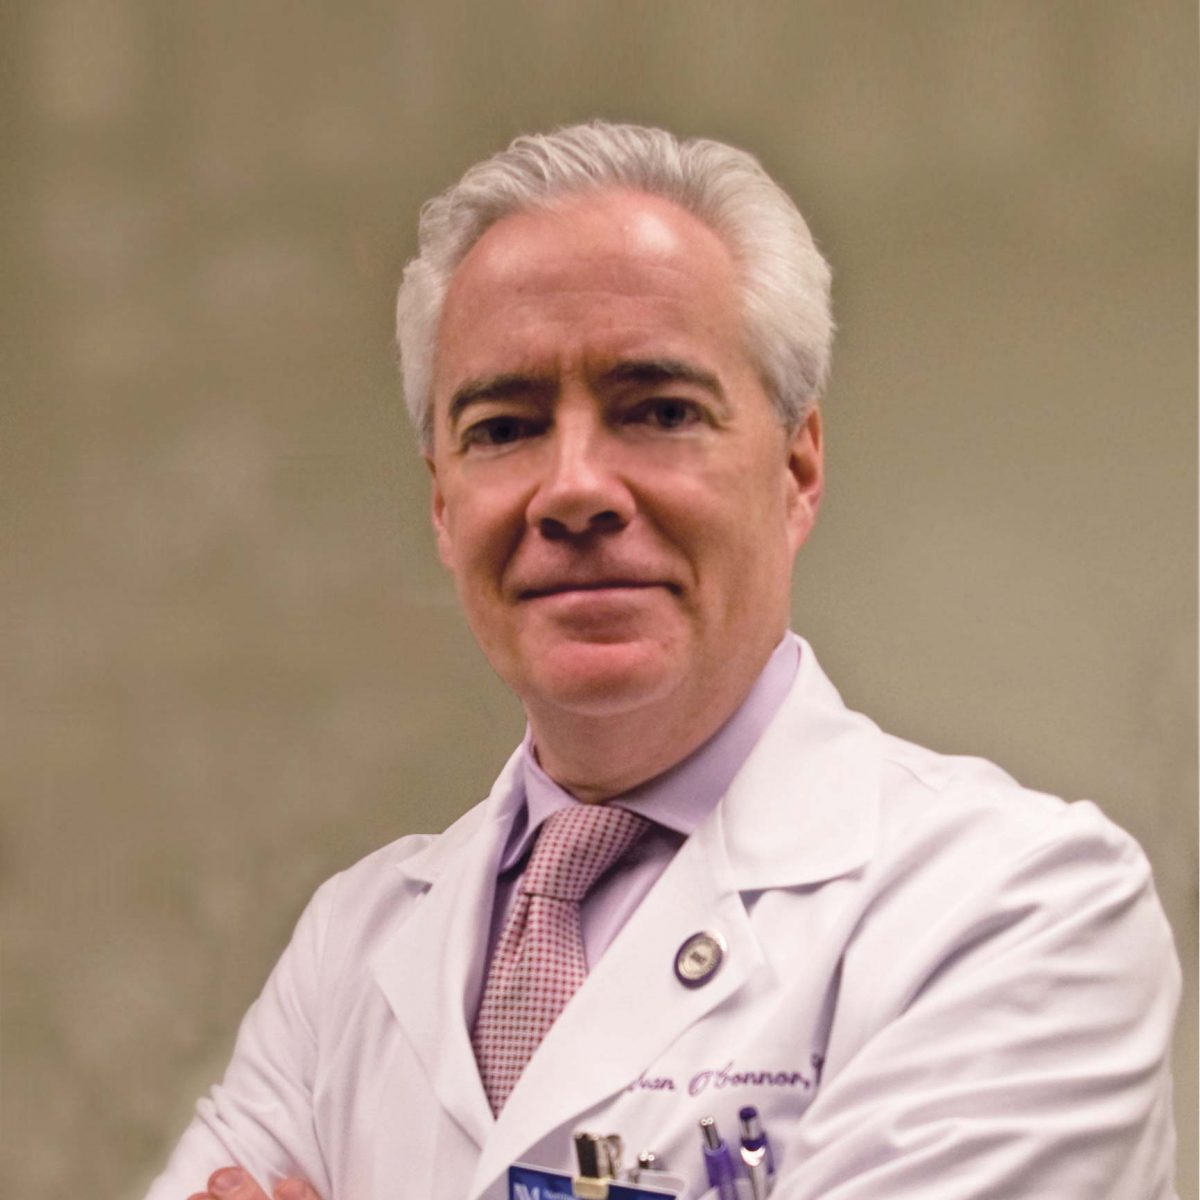 Sean O'Connor, MD